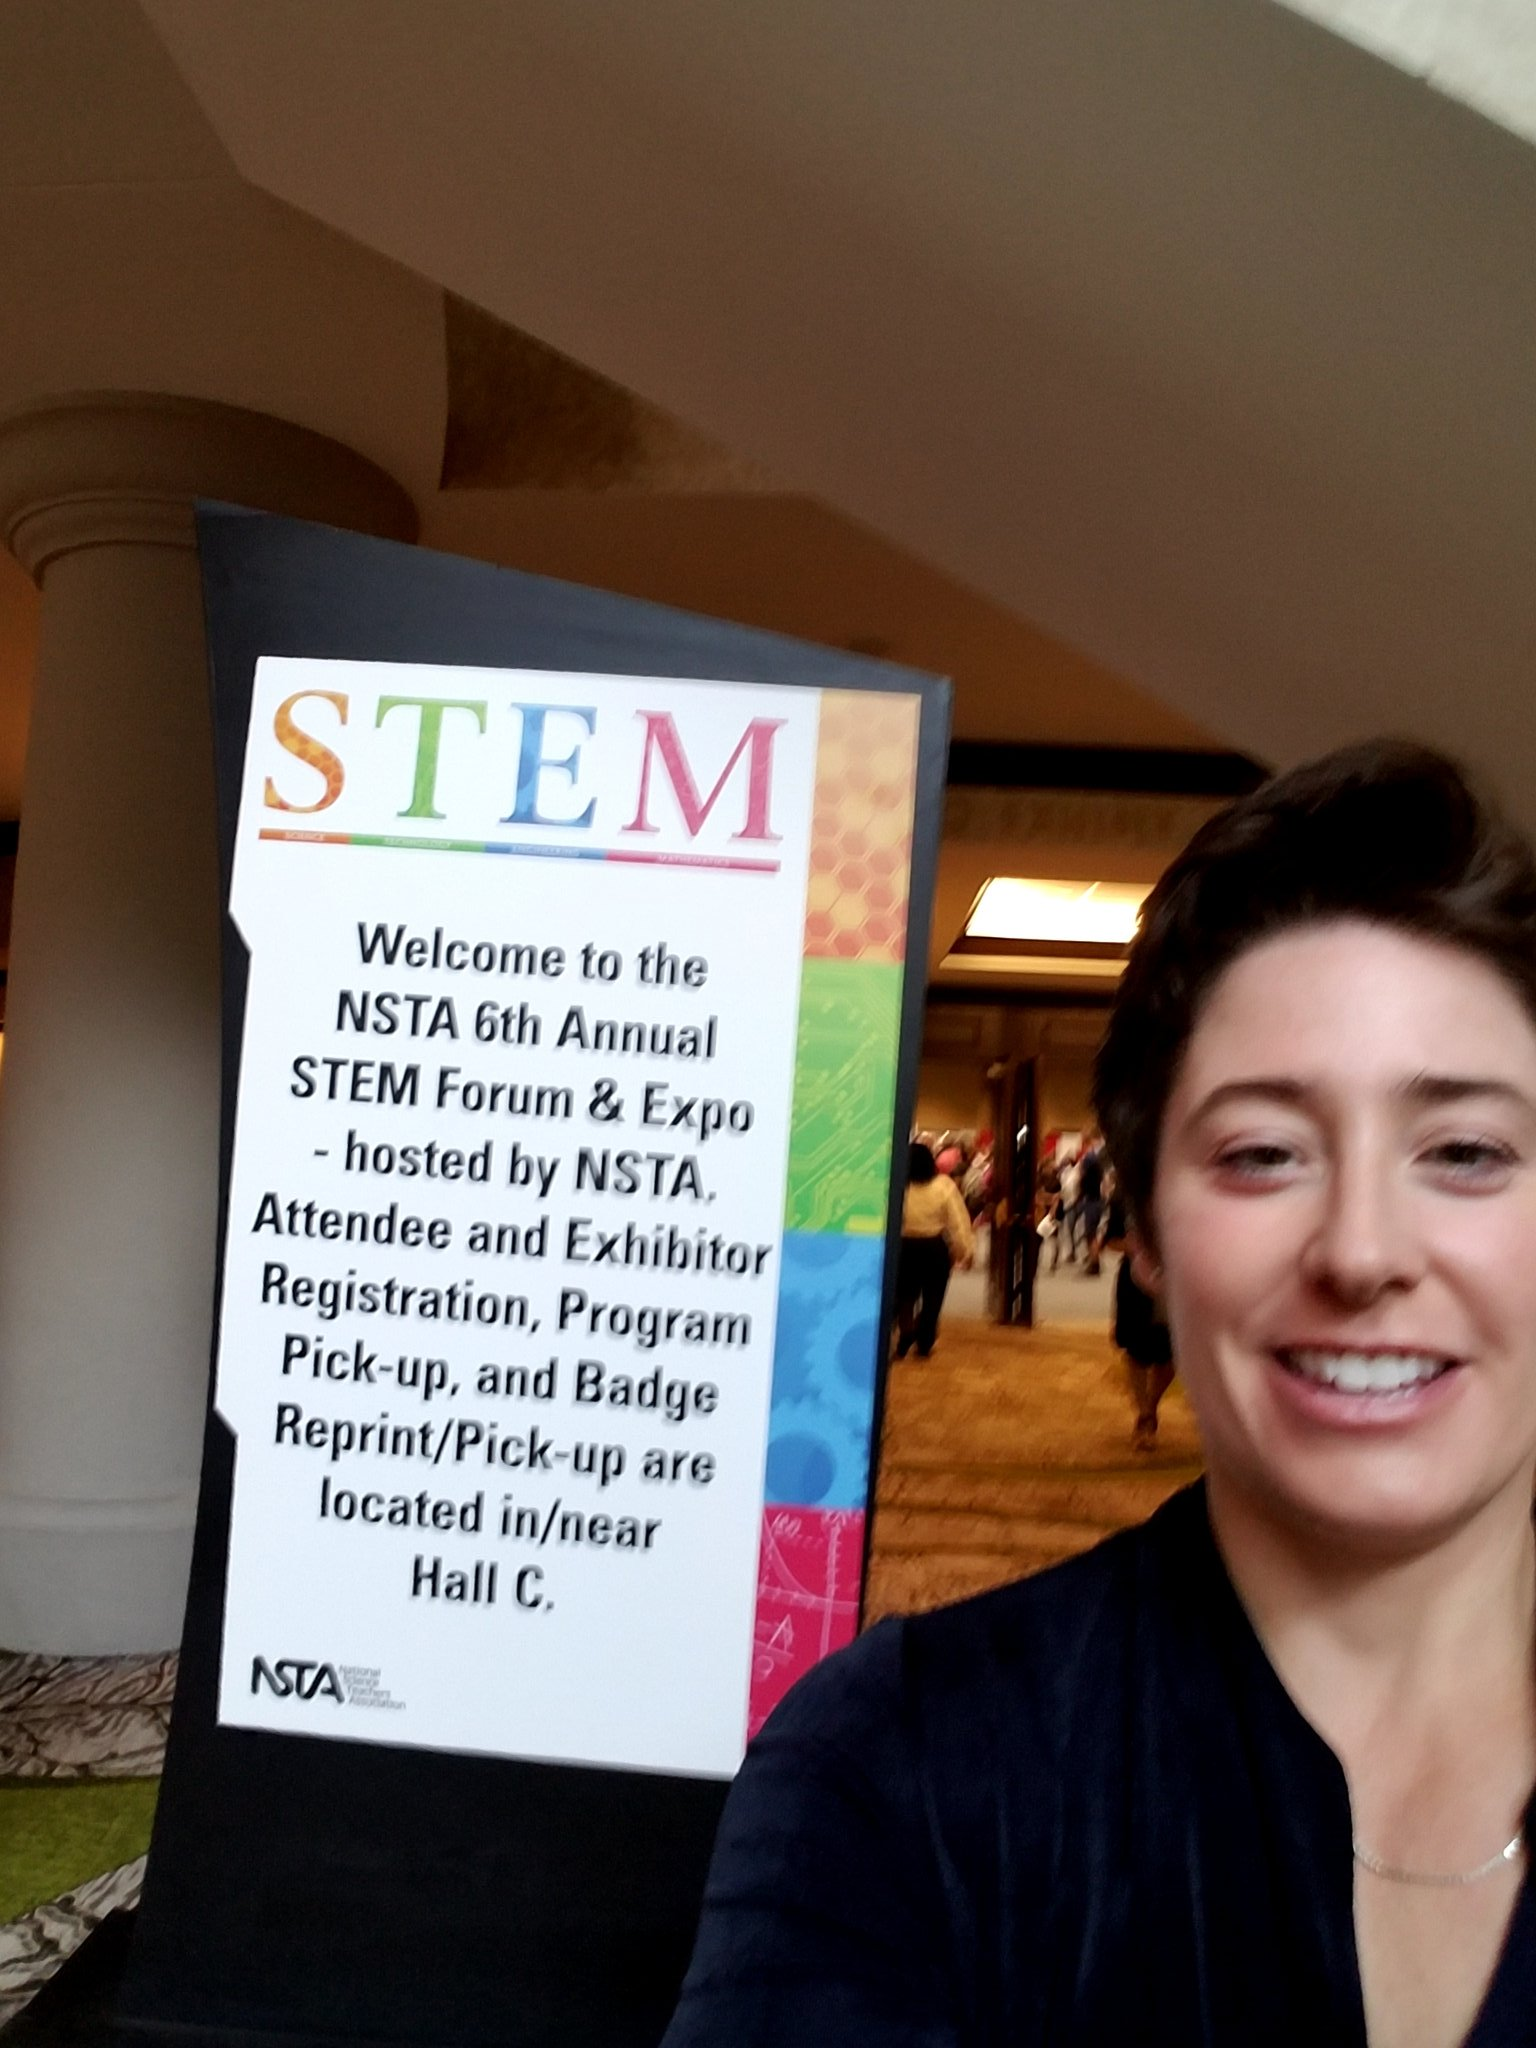 #IdahoSTEMAC is presenting at the NSTA STEM Forum on #CSforAll https://t.co/41bjVA8Sdh